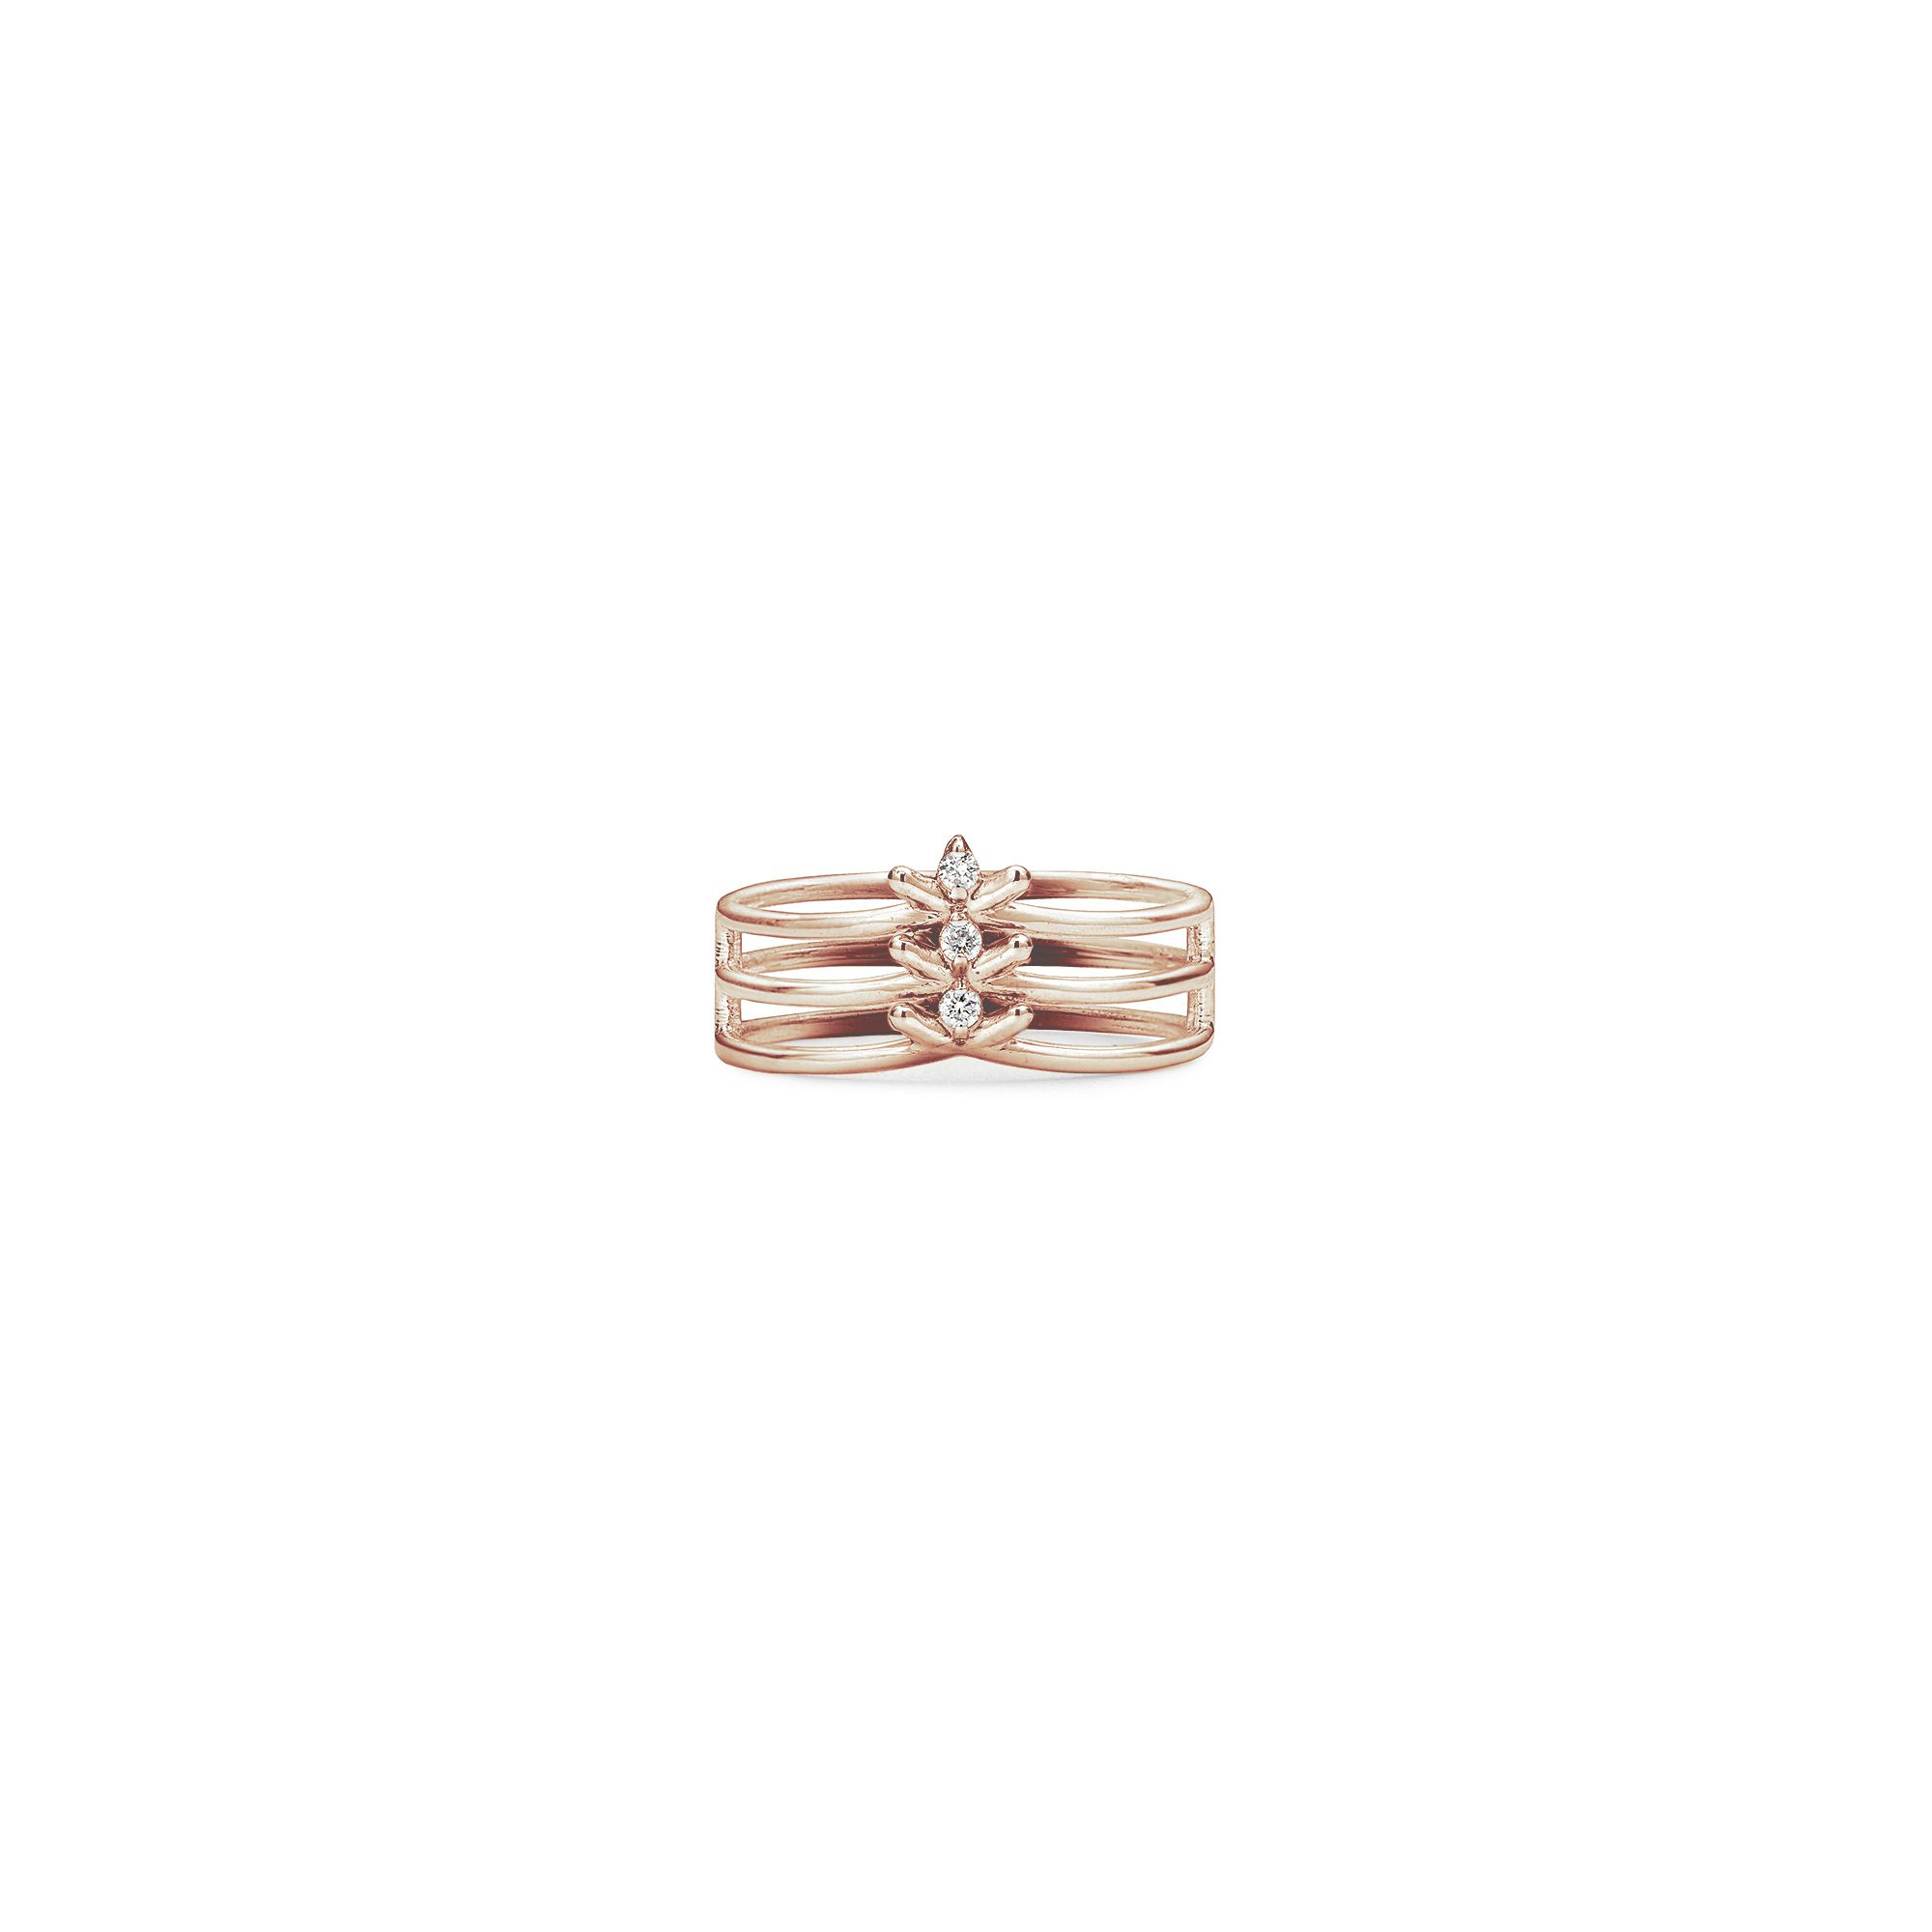 3 element 'Spinae' ring Rose gold ring with diamonds